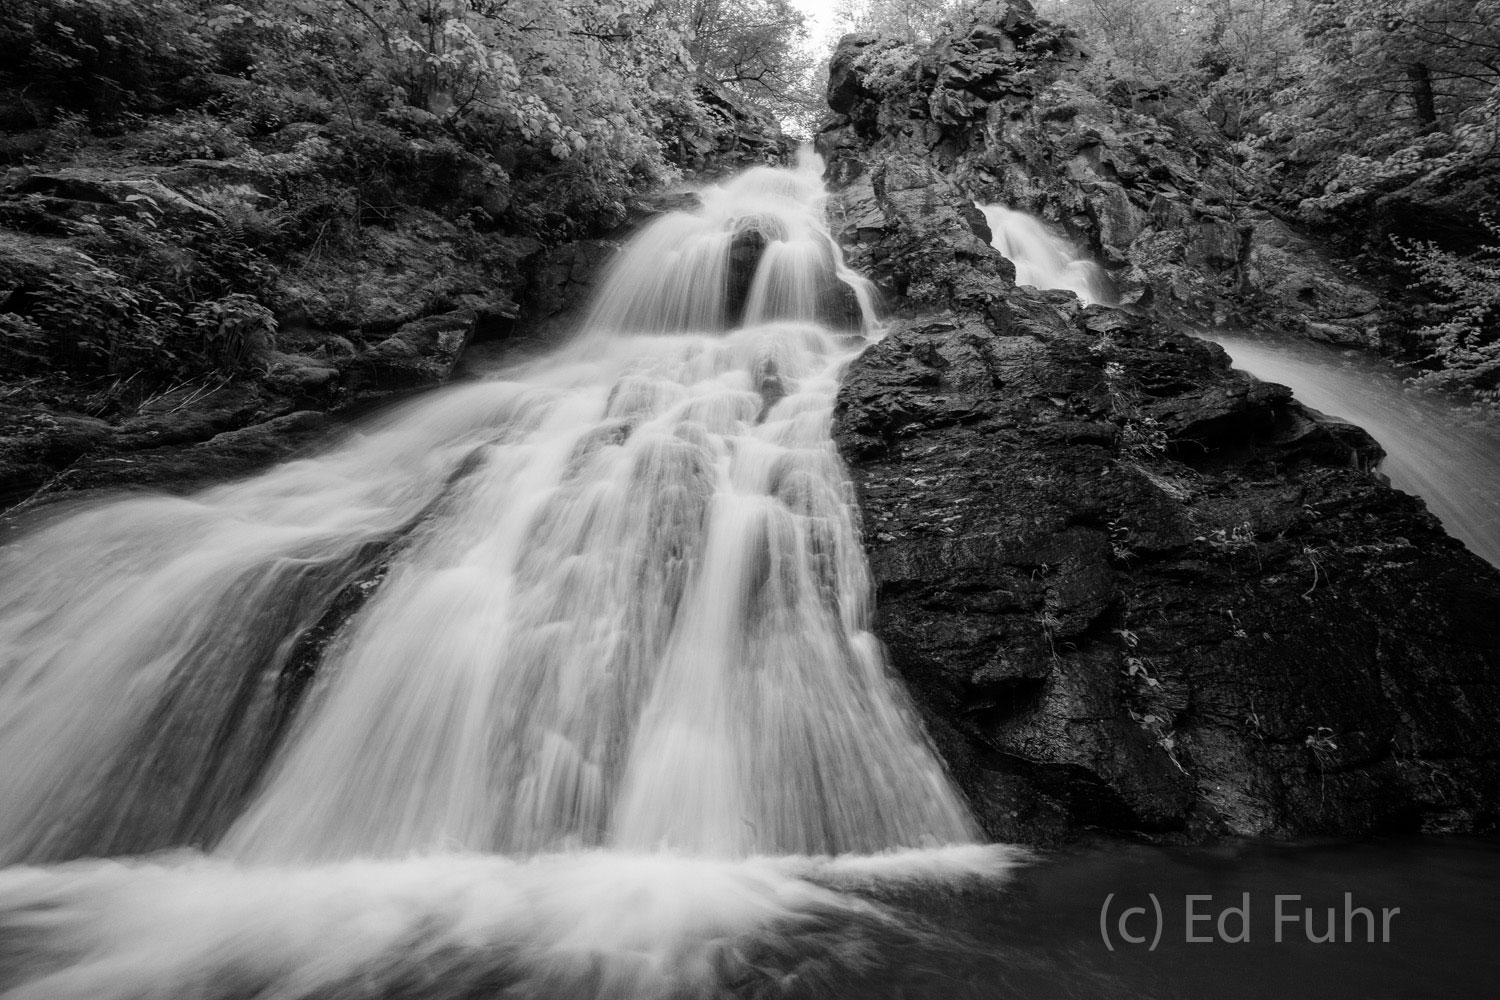 South River Falls, Shenandoah national park, image, photograph, photo